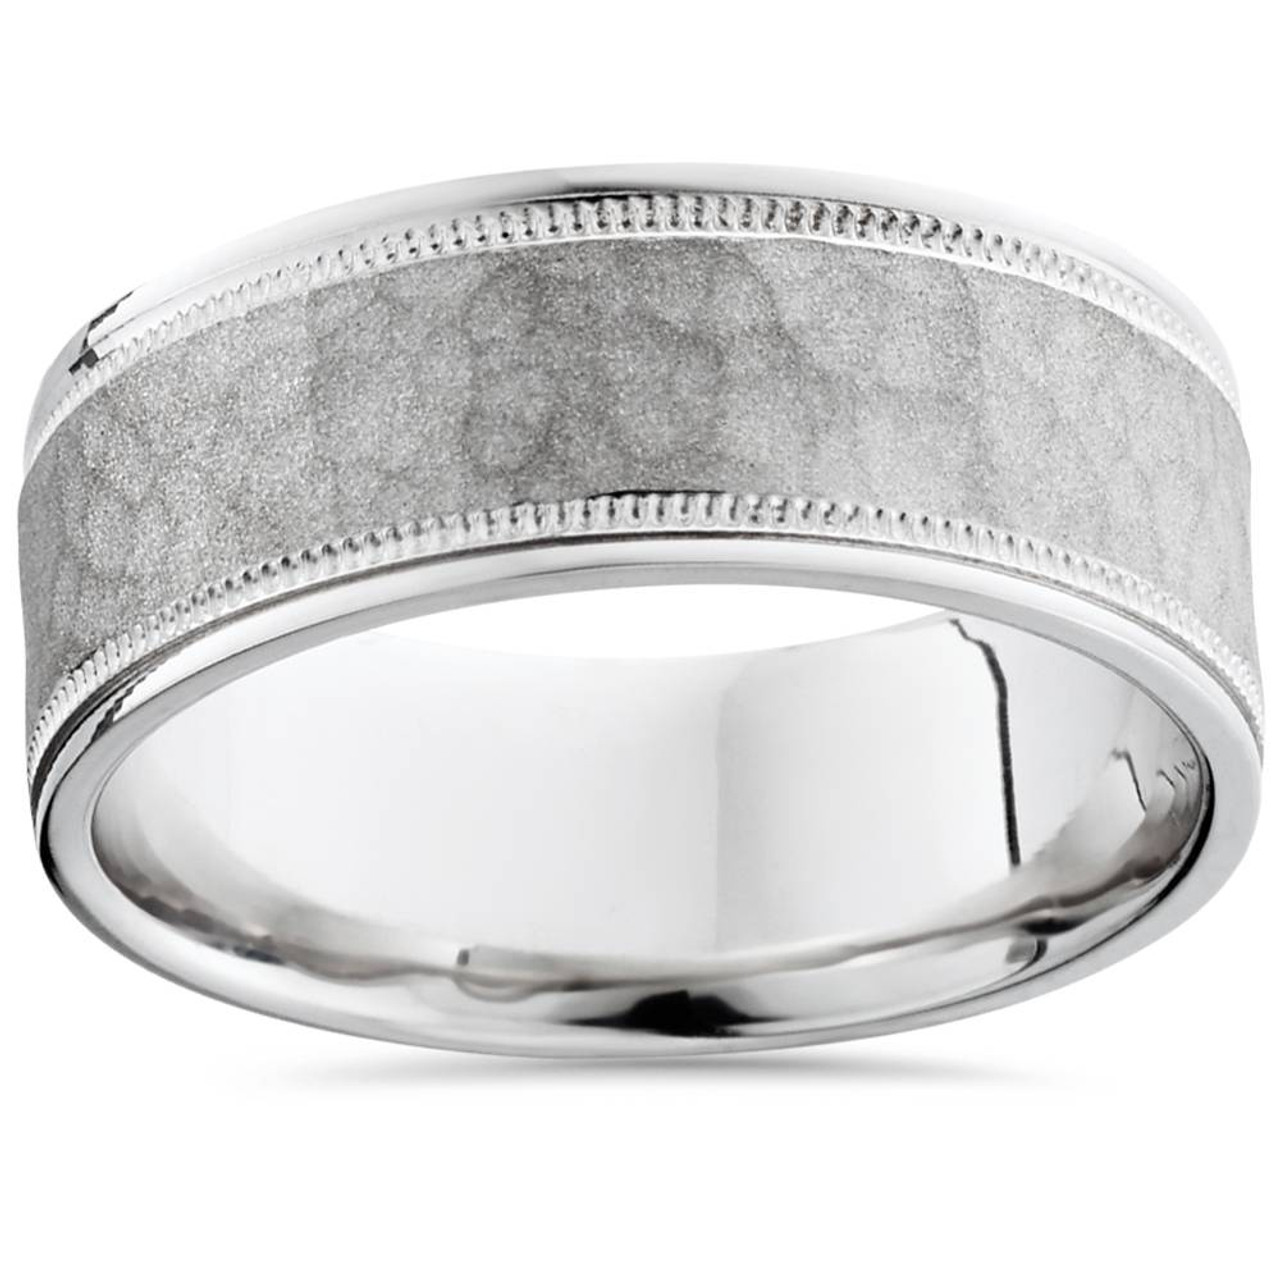 wedding of platinum size for option milgrain bands with diamonds large your band another rings